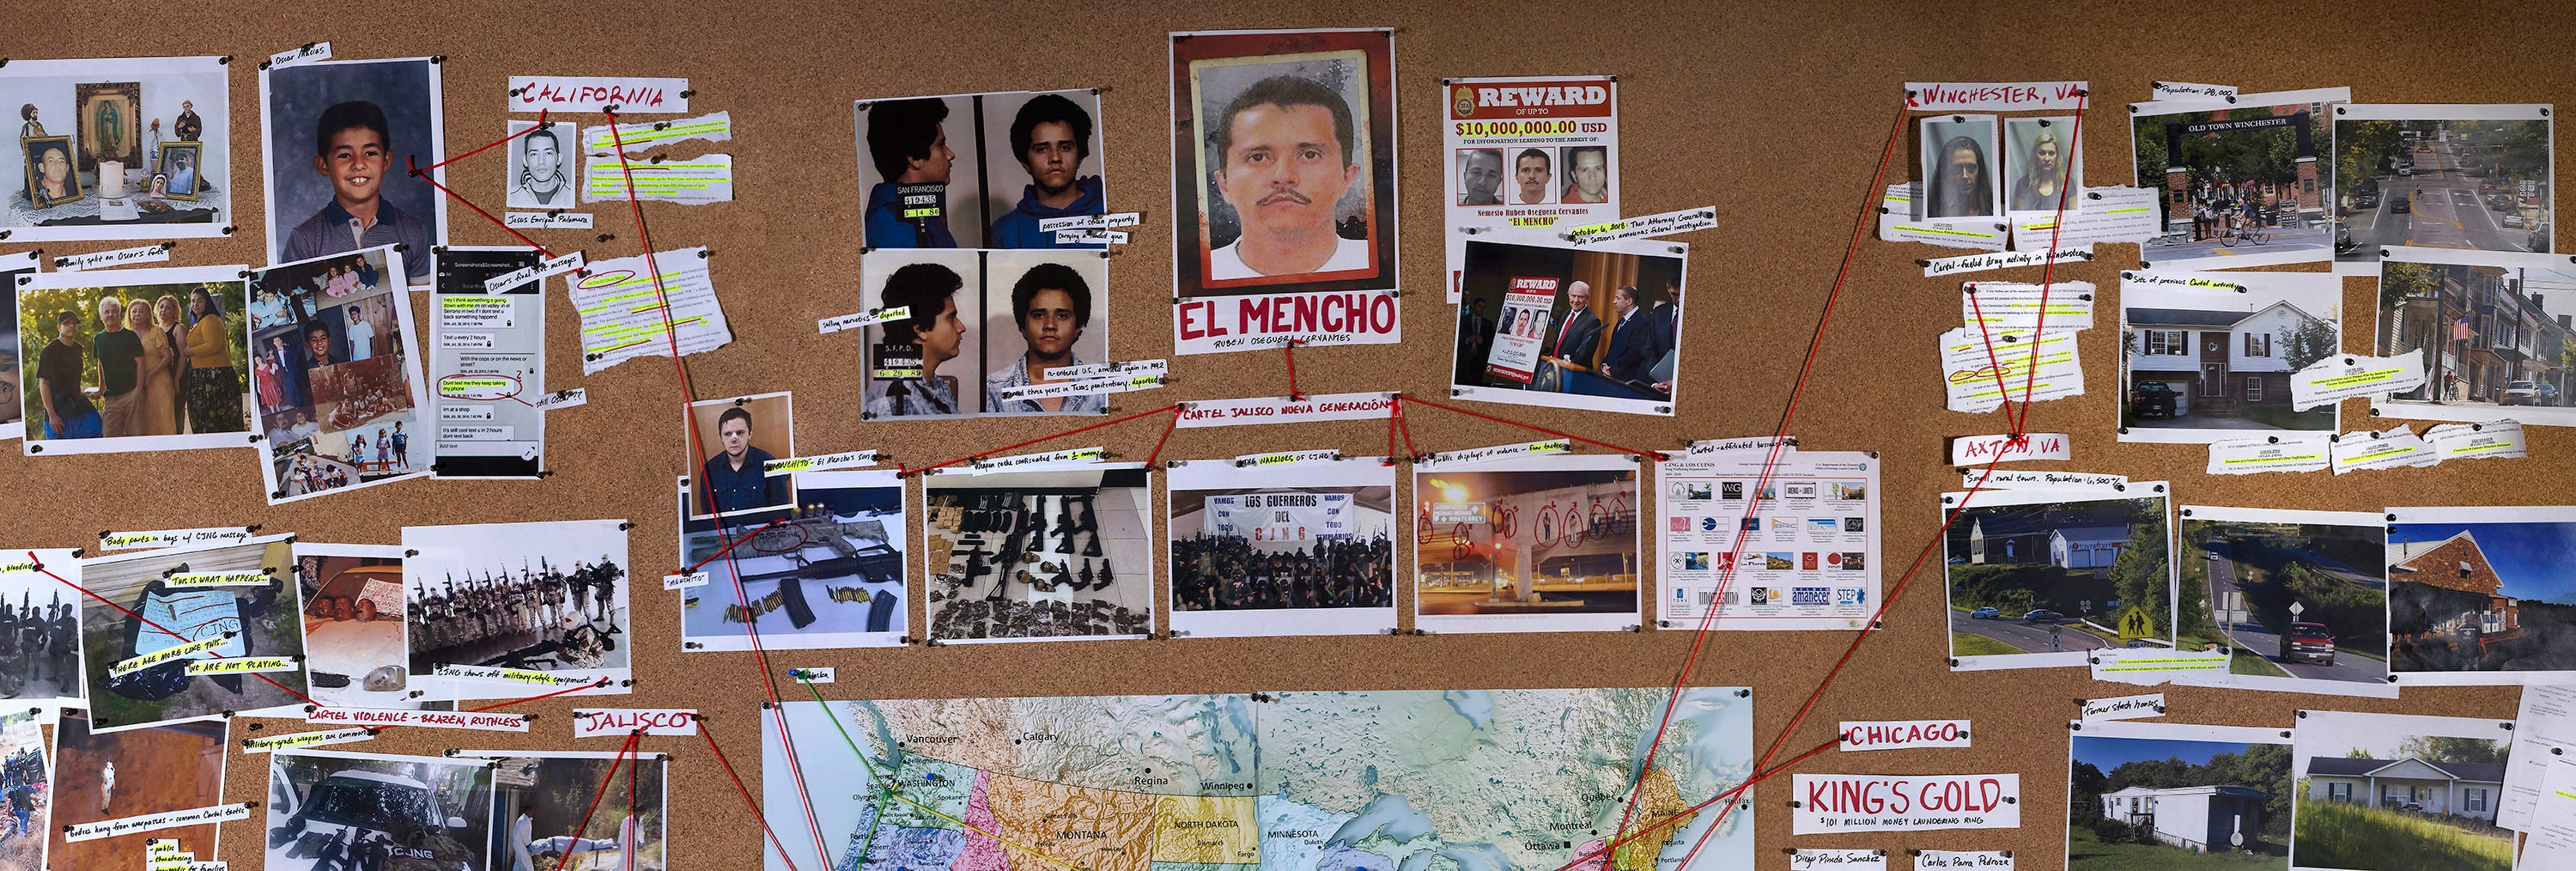 Will El Mencho ever be captured?